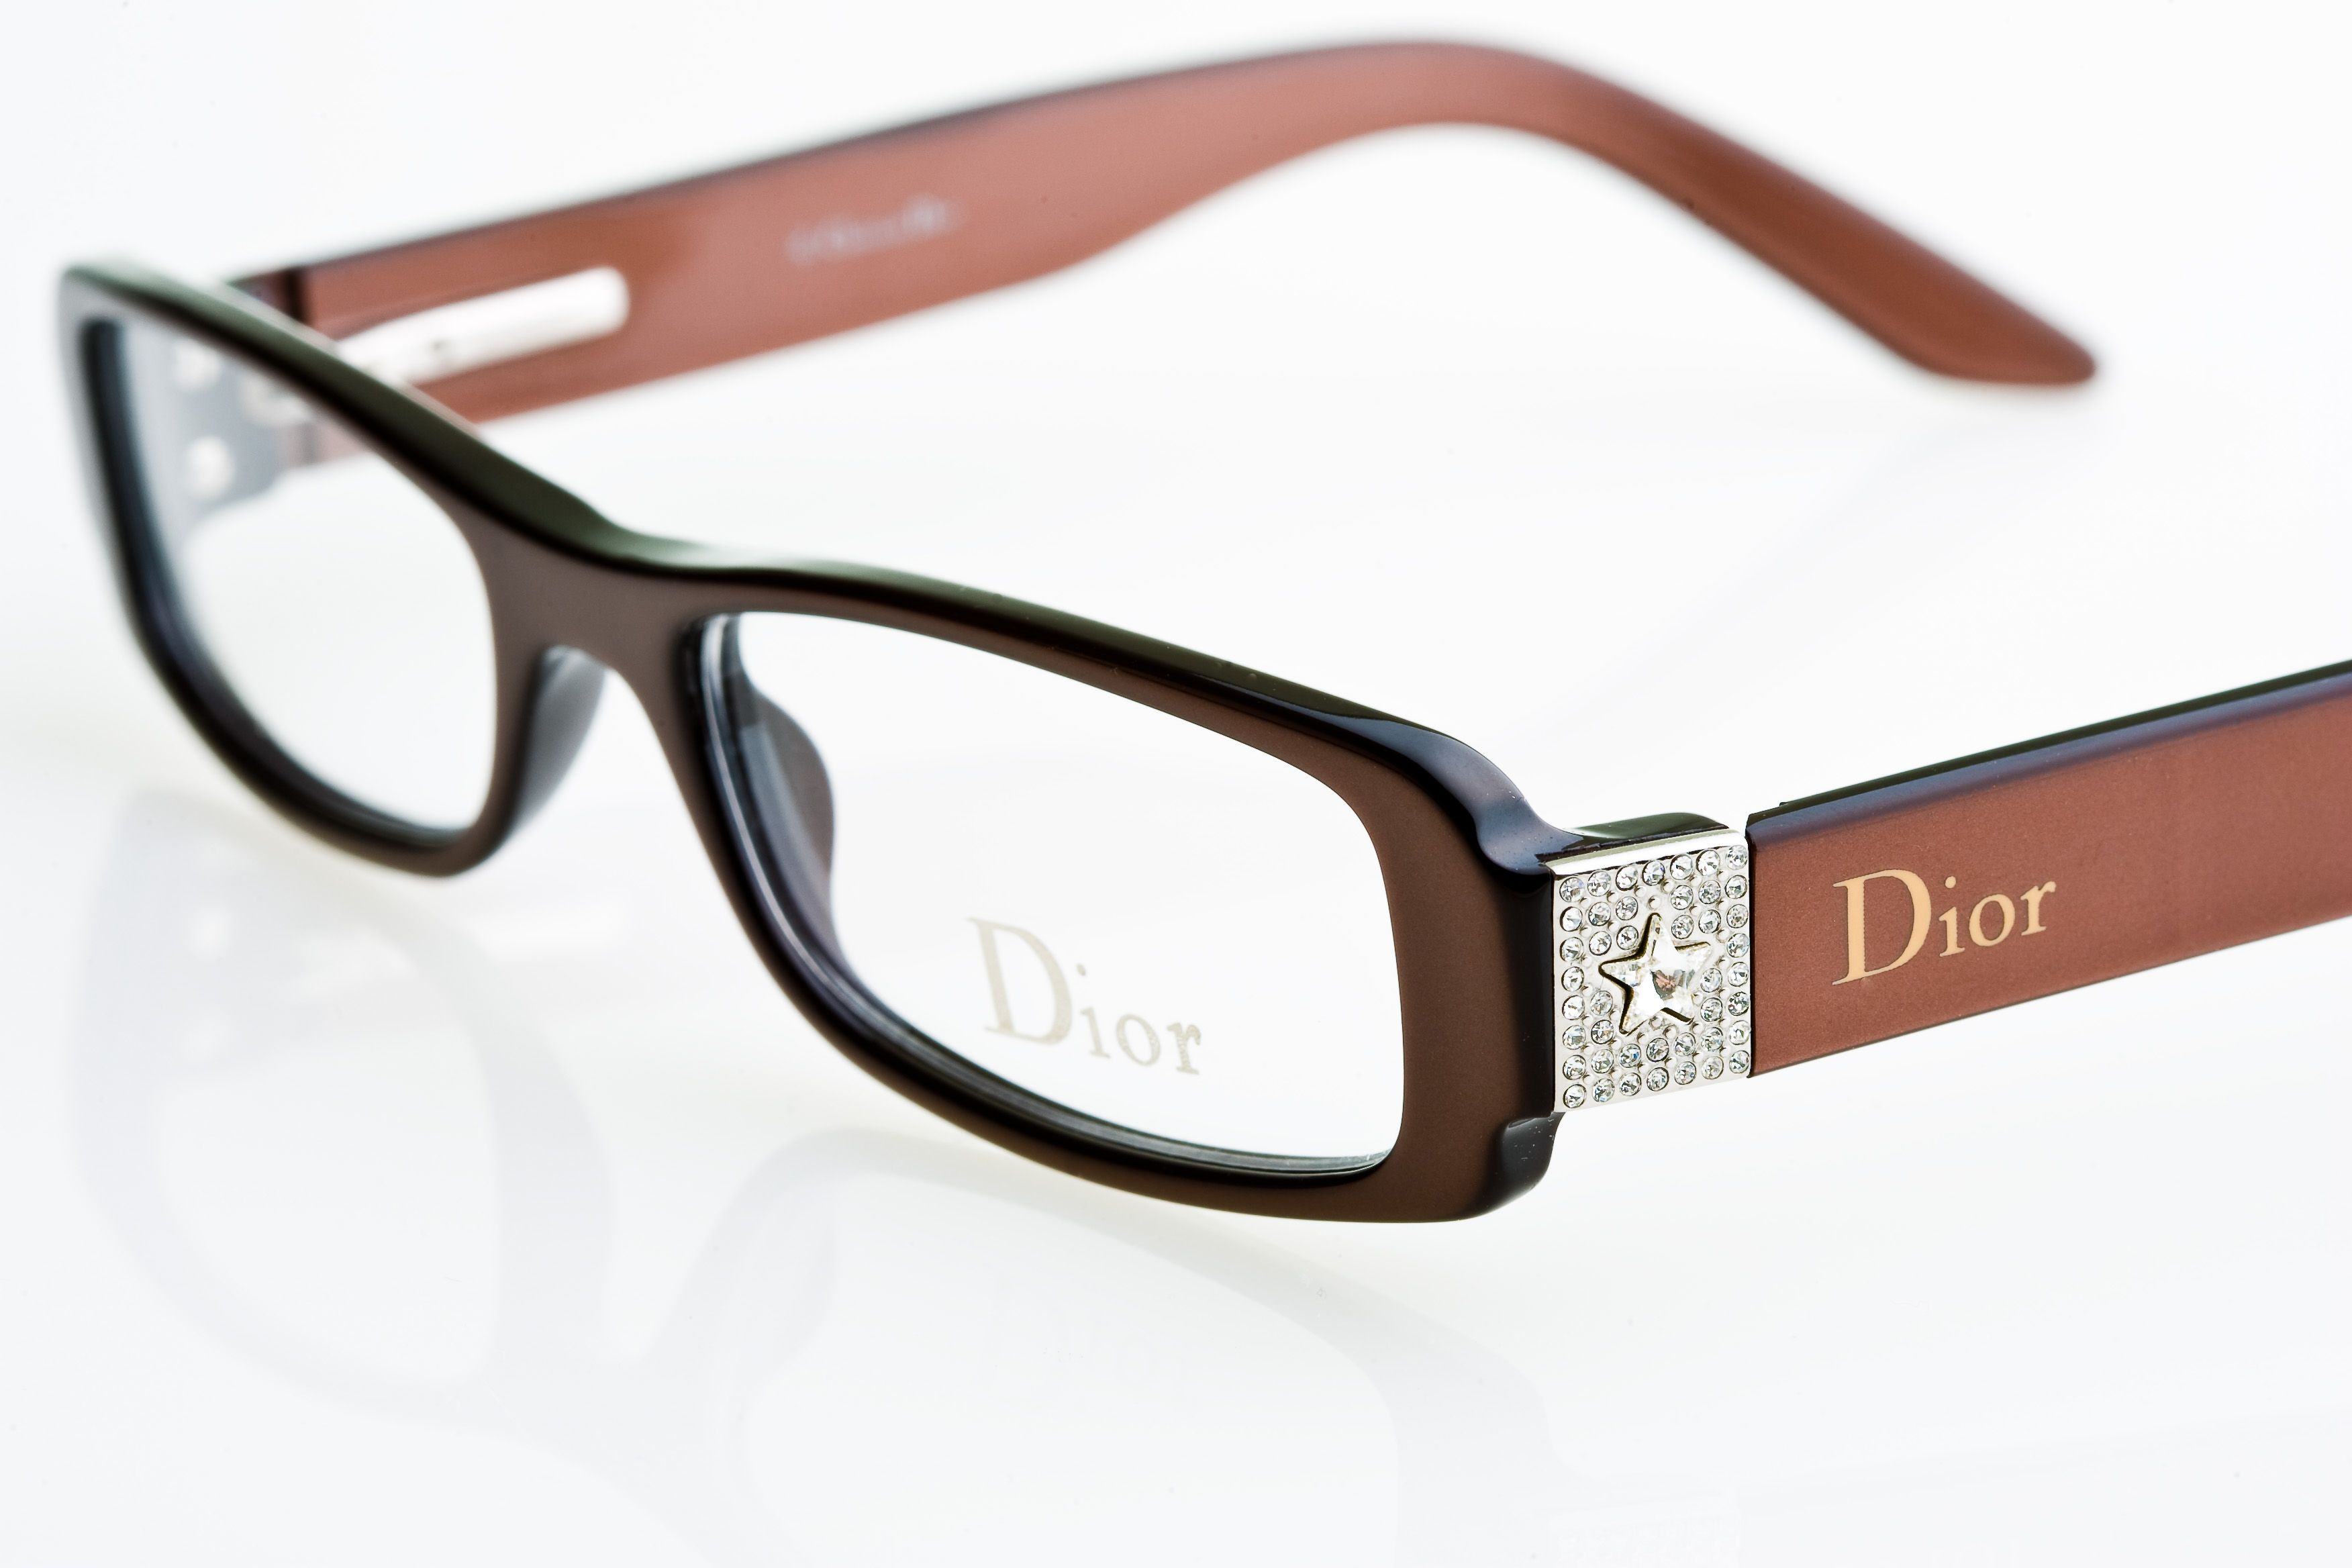 Eyeglasses cost - Finding The Right Pair Of Women S Eyeglass Frames Doesn T Have To Be A Difficult Task Stanton Optical Offers Designer Eyeglasses At The Lowest Cost